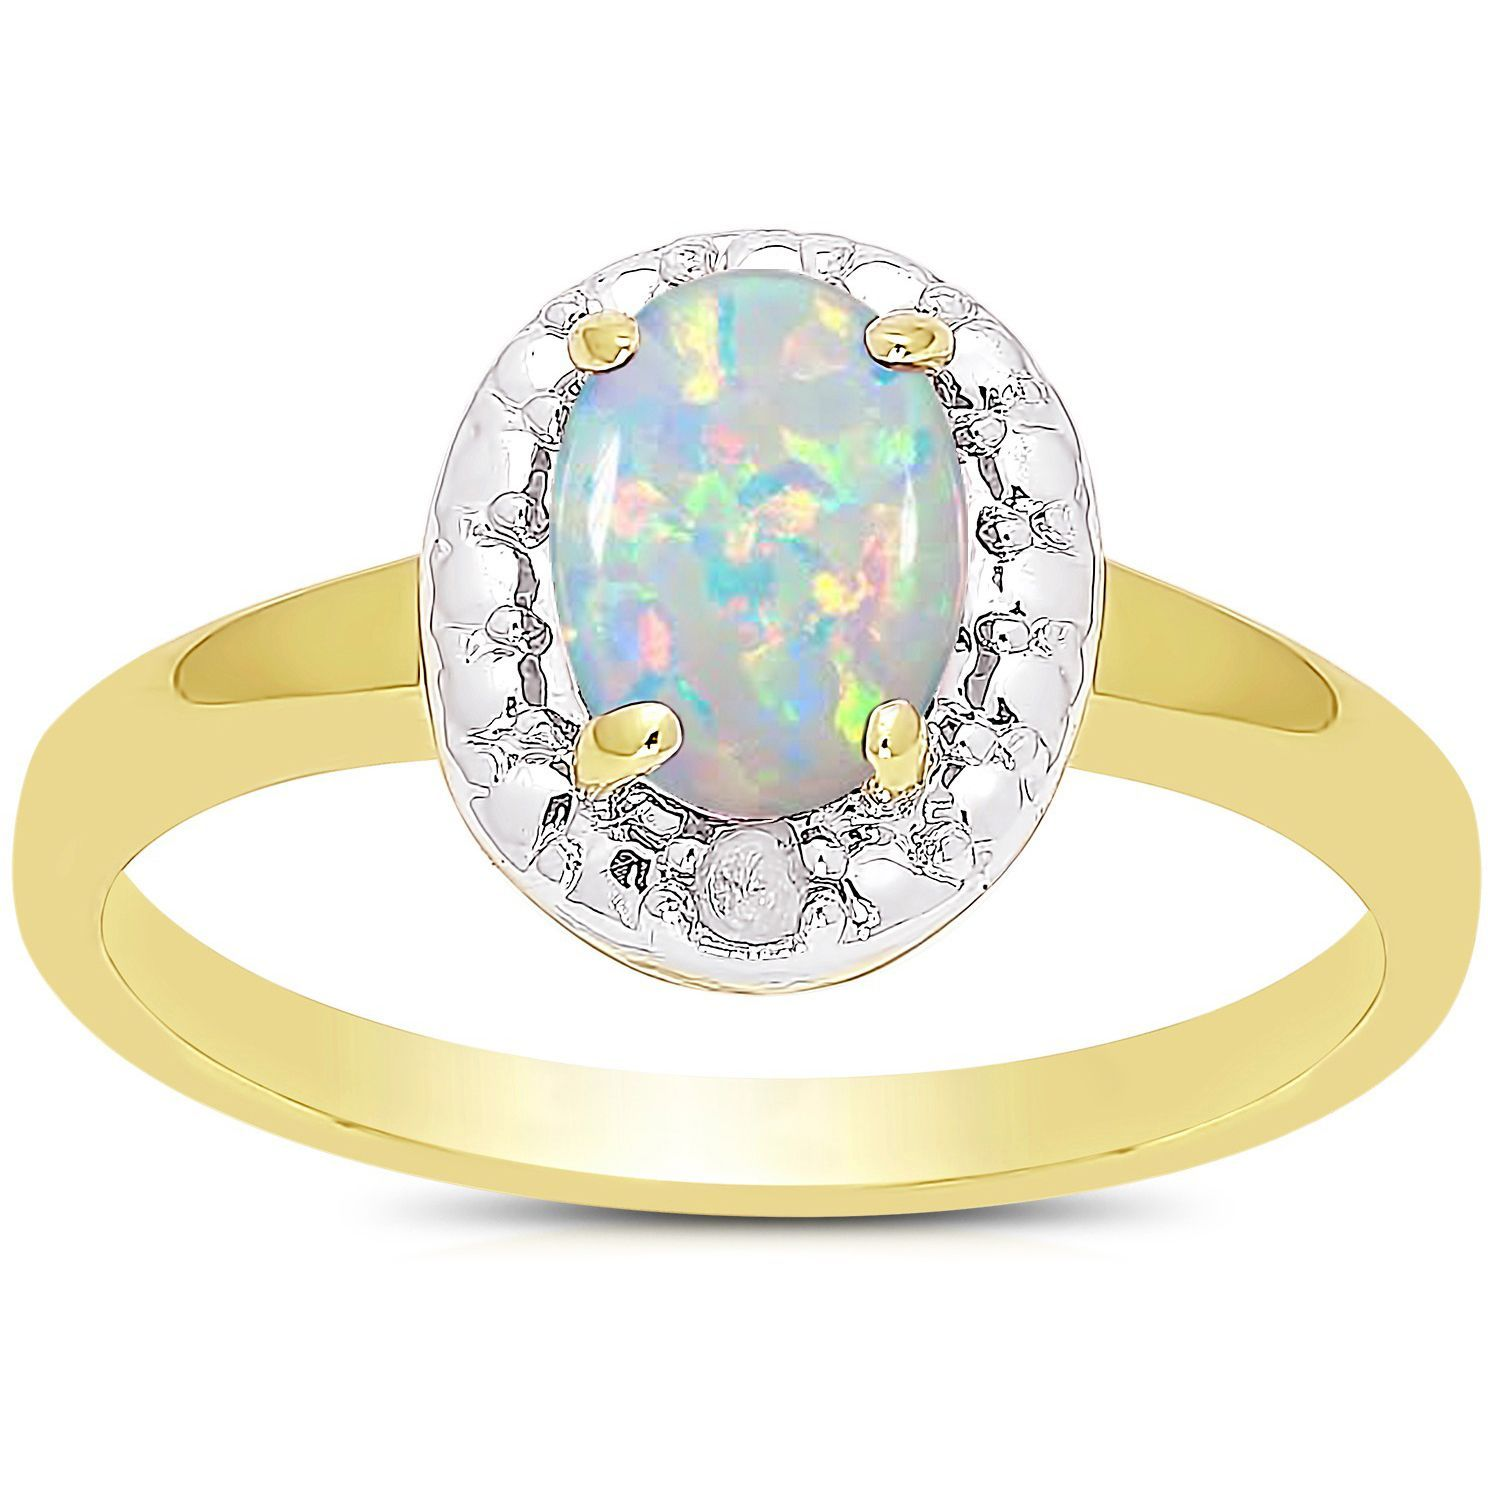 Dolce Giavonna 14k Gold Overlay Birthstone and Diamond Ring (October / Opal - Size 7), Adult Unisex, White